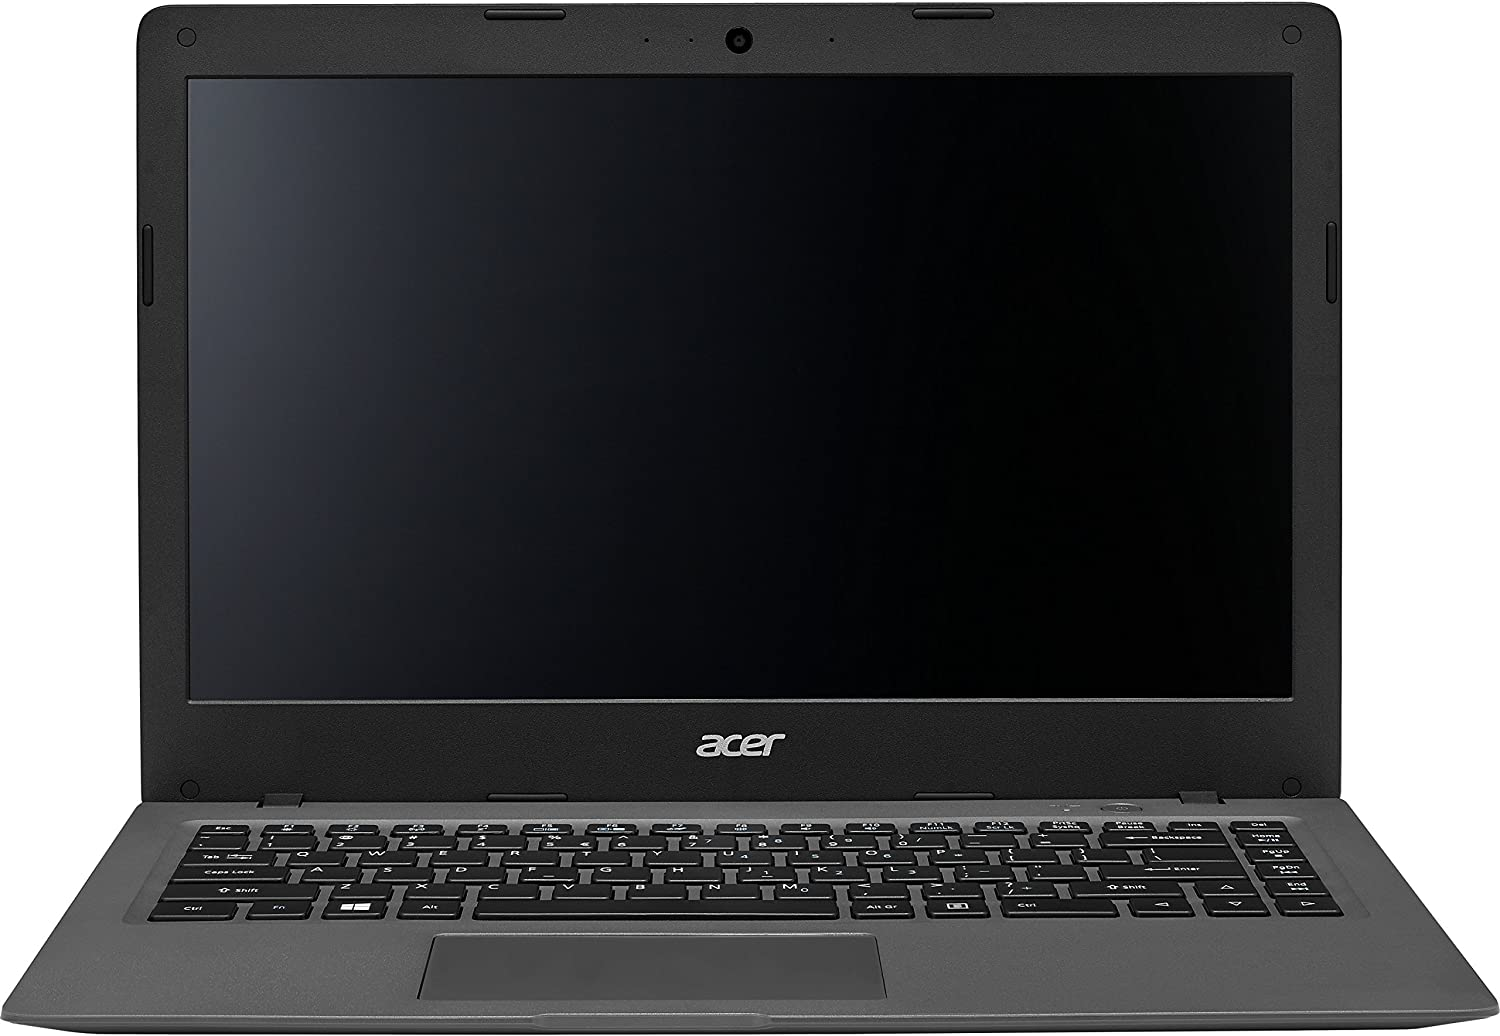 "Acer Aspire One 14"" Cloudbook AO1-431-C8G8 Laptop PC with Intel Celeron N3050, 2GB Memory, 32GB eMMC, Windows 10 and Office 365 Personal Mineral Gray"